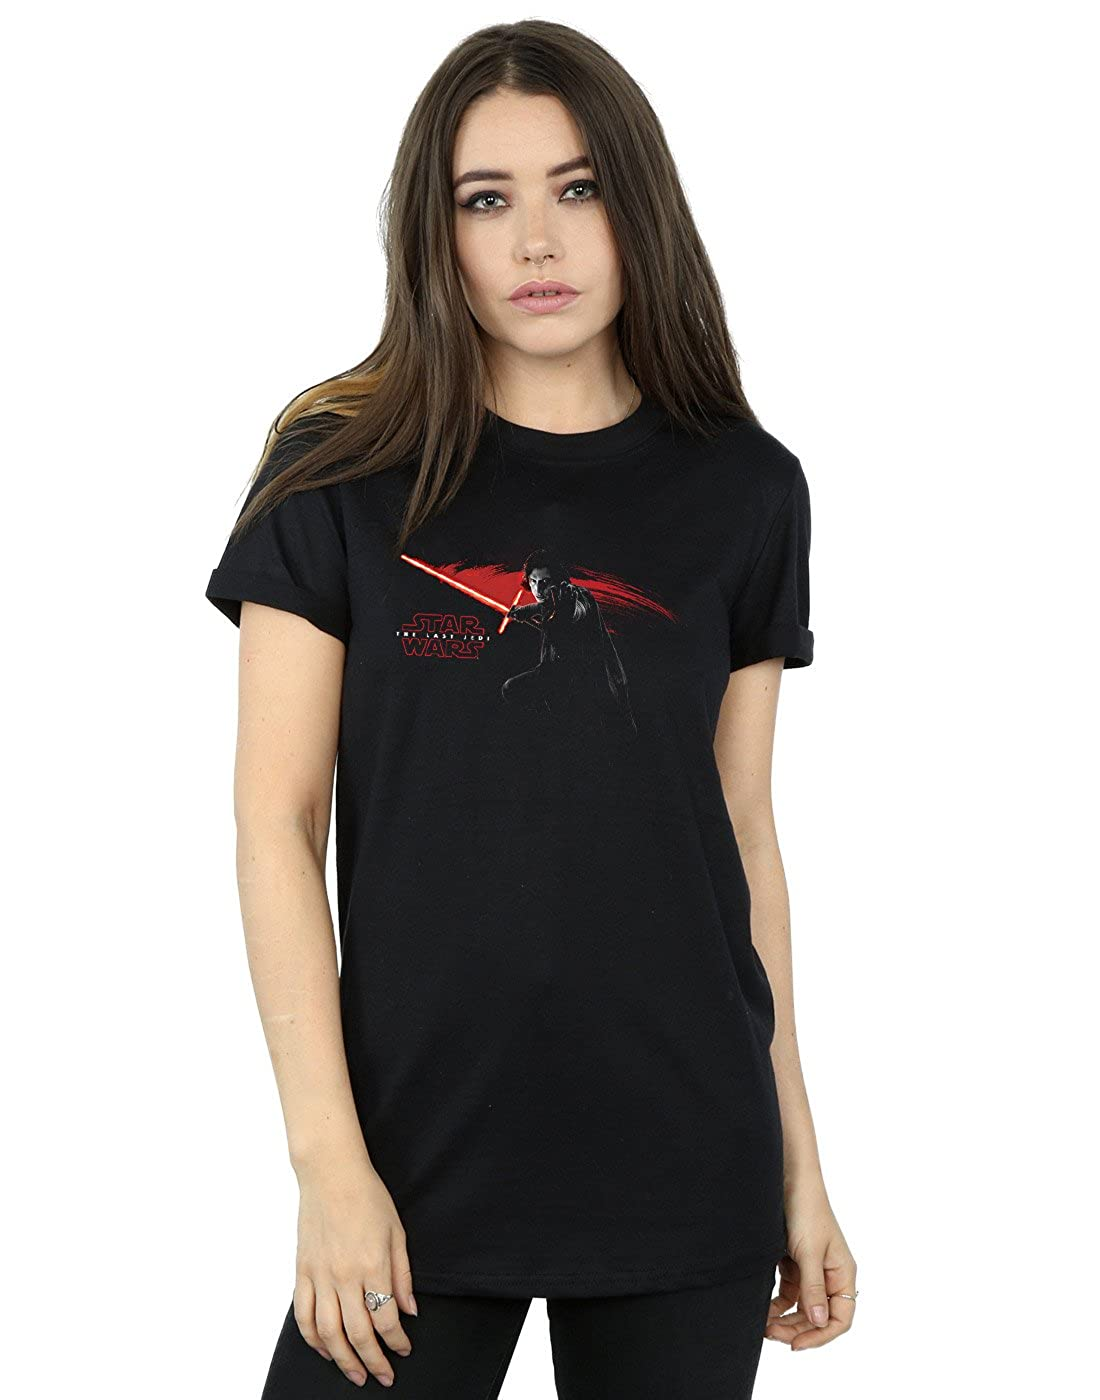 STAR WARS Mujer The Last Jedi Kylo REN Hand Camiseta del Novio Fit